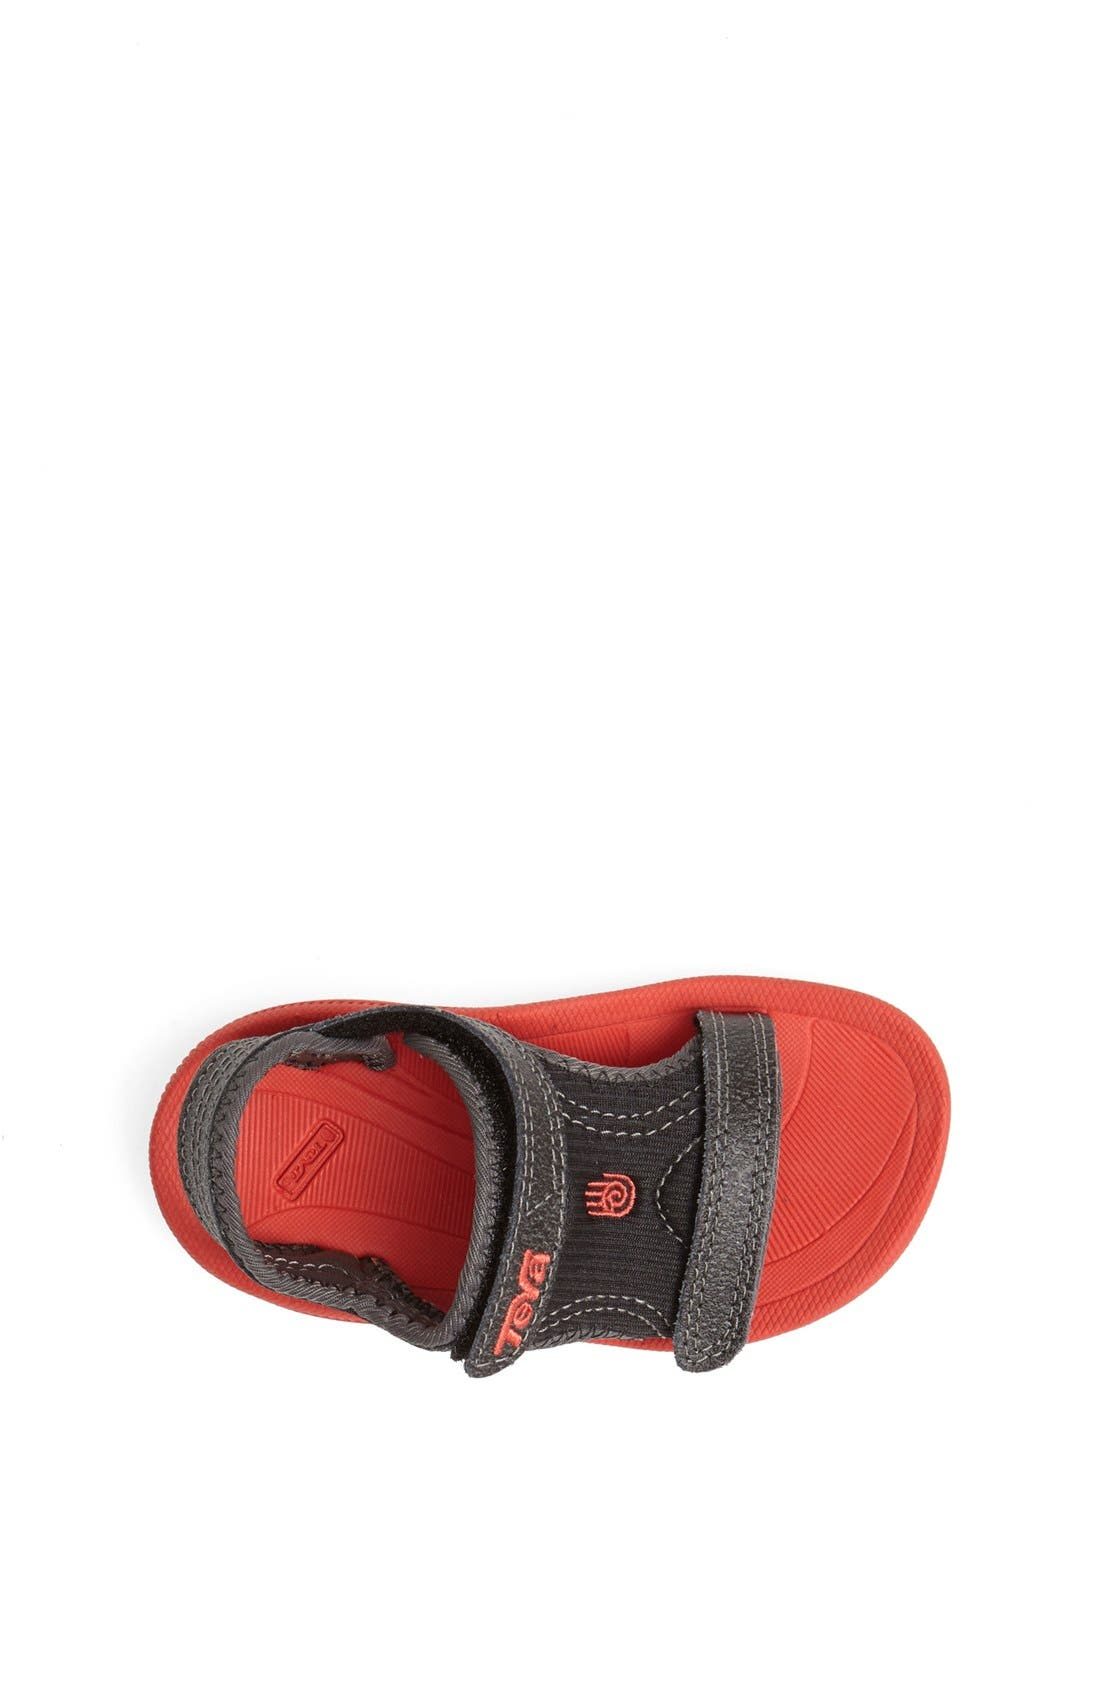 Alternate Image 3  - Teva 'Psyclone 3' Sandal (Baby, Walker, Toddler & Little Kid)